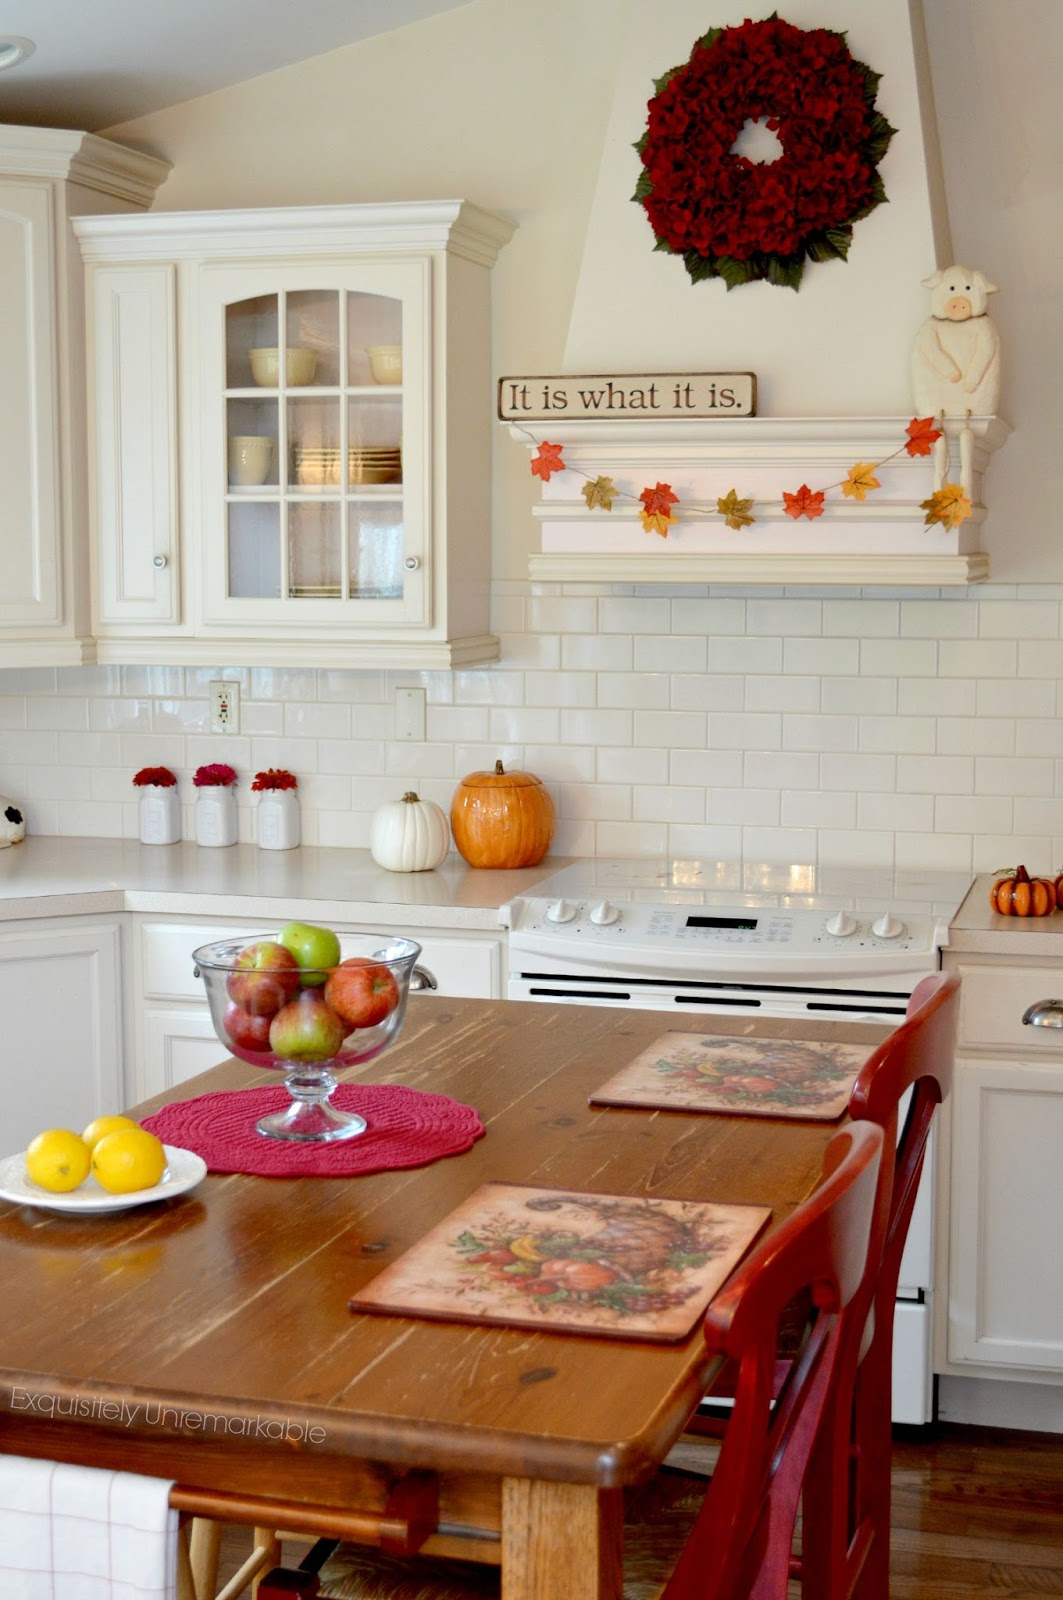 Decorating For Fall The Kitchen Exquisitely Unremarkable